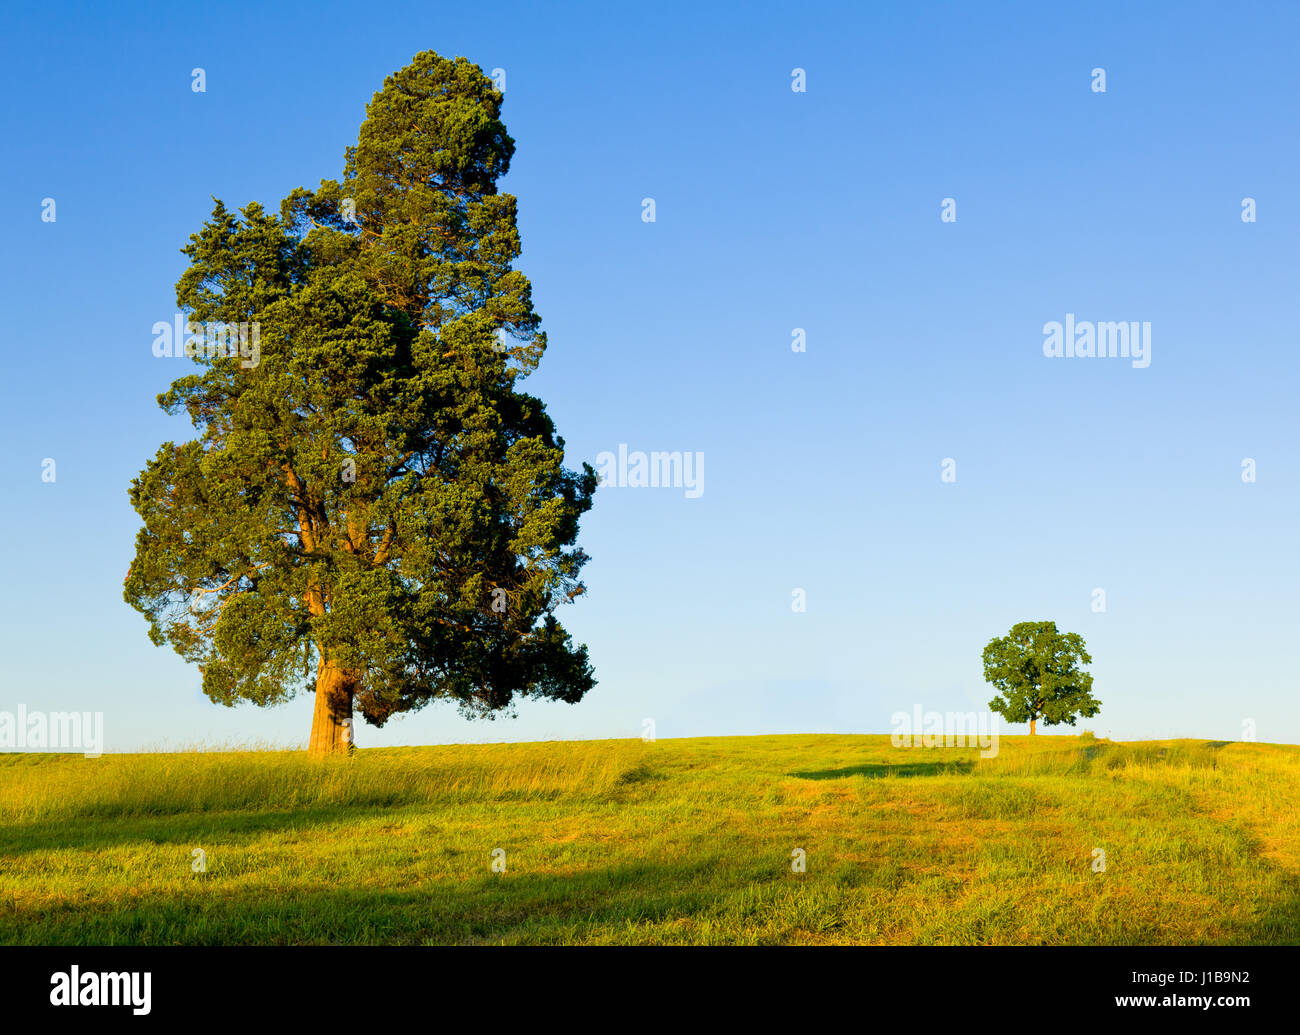 Large pine type tree with another smaller tree on horizon in meadow or field - protection or competition or big - Stock Image